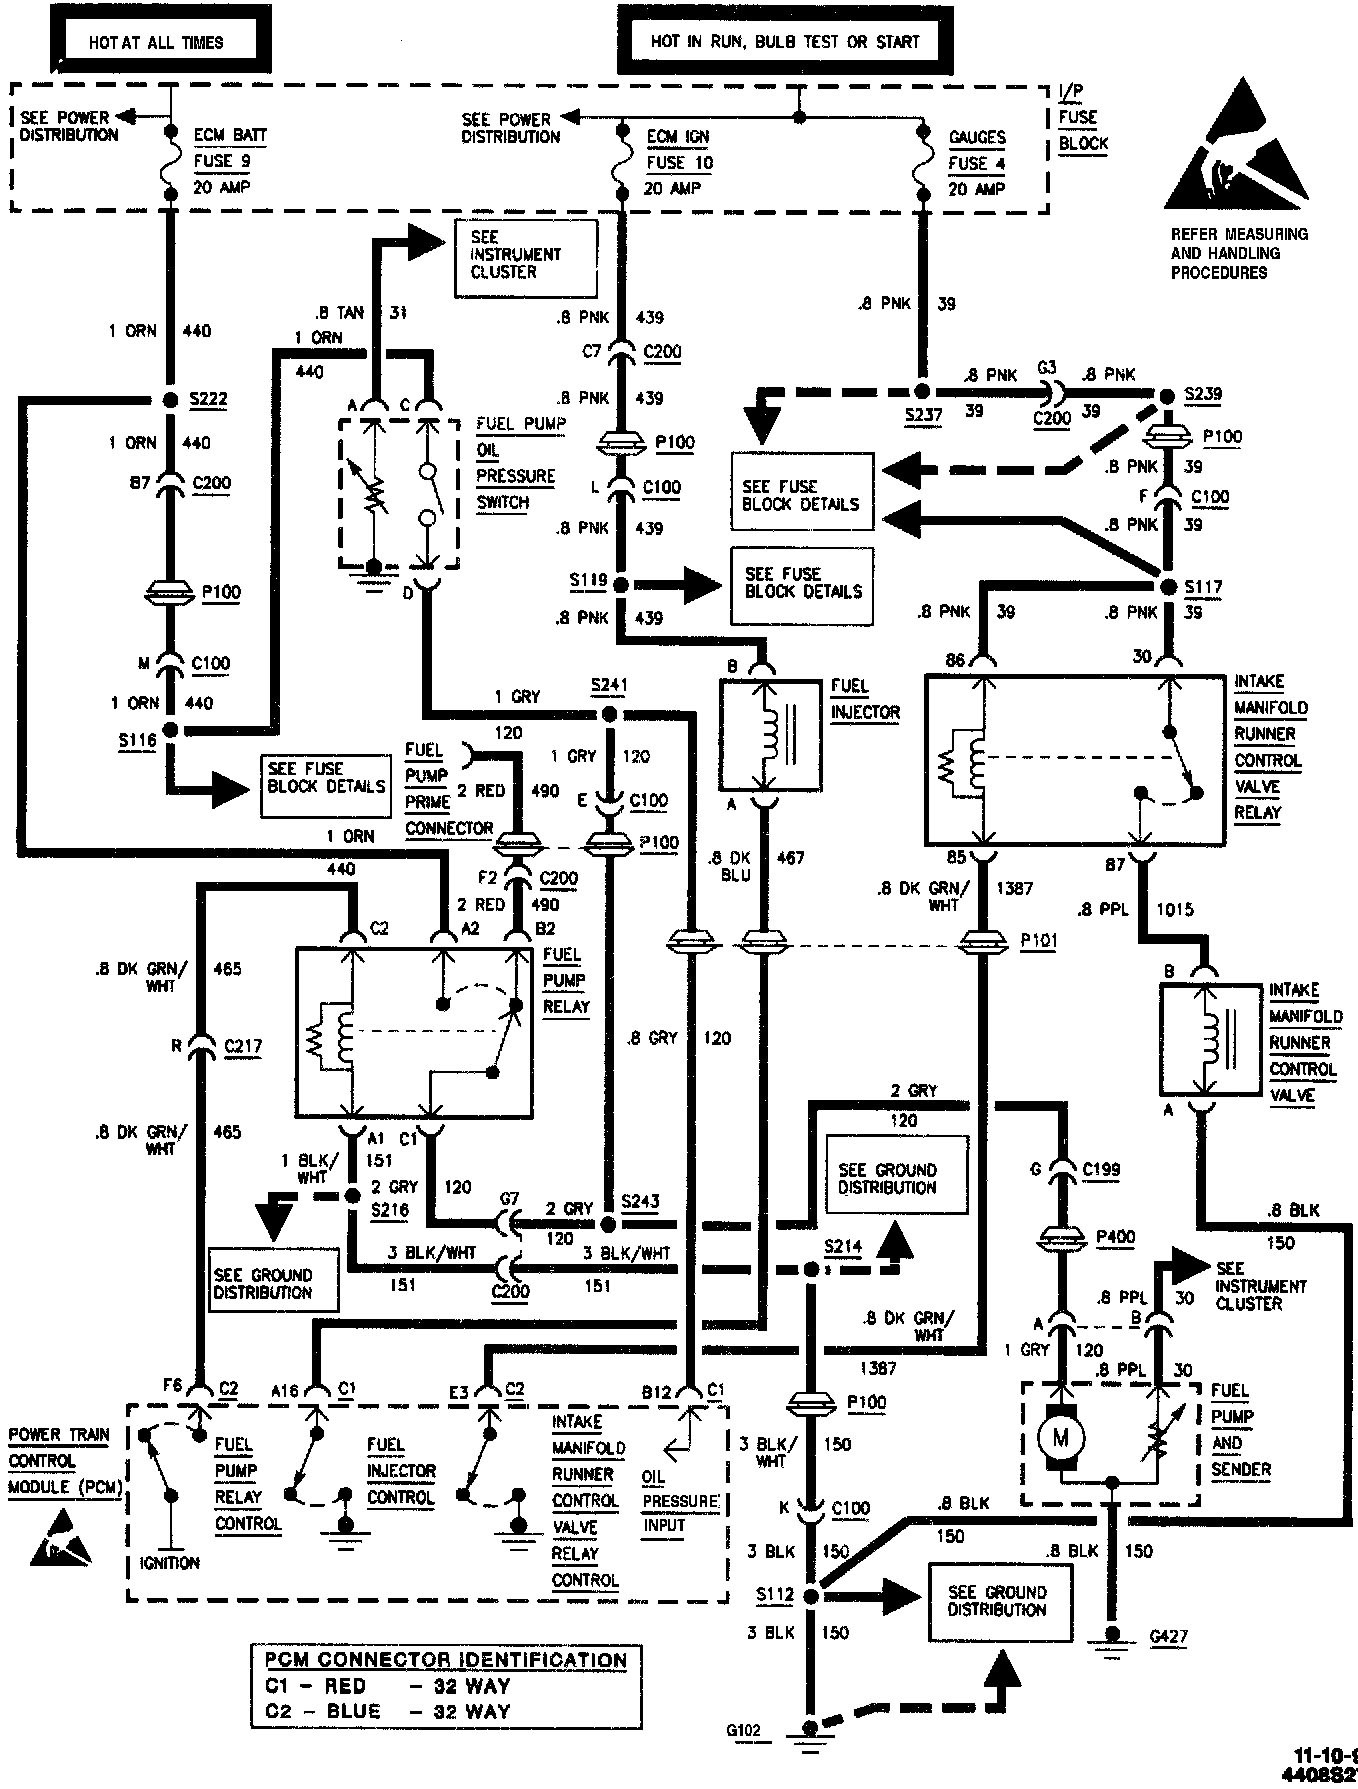 1998 Chevy S10 Engine Diagram Diagram 1995 Chevy Pickup Engine Diagram Windshield Pump Fuse Of 1998 Chevy S10 Engine Diagram